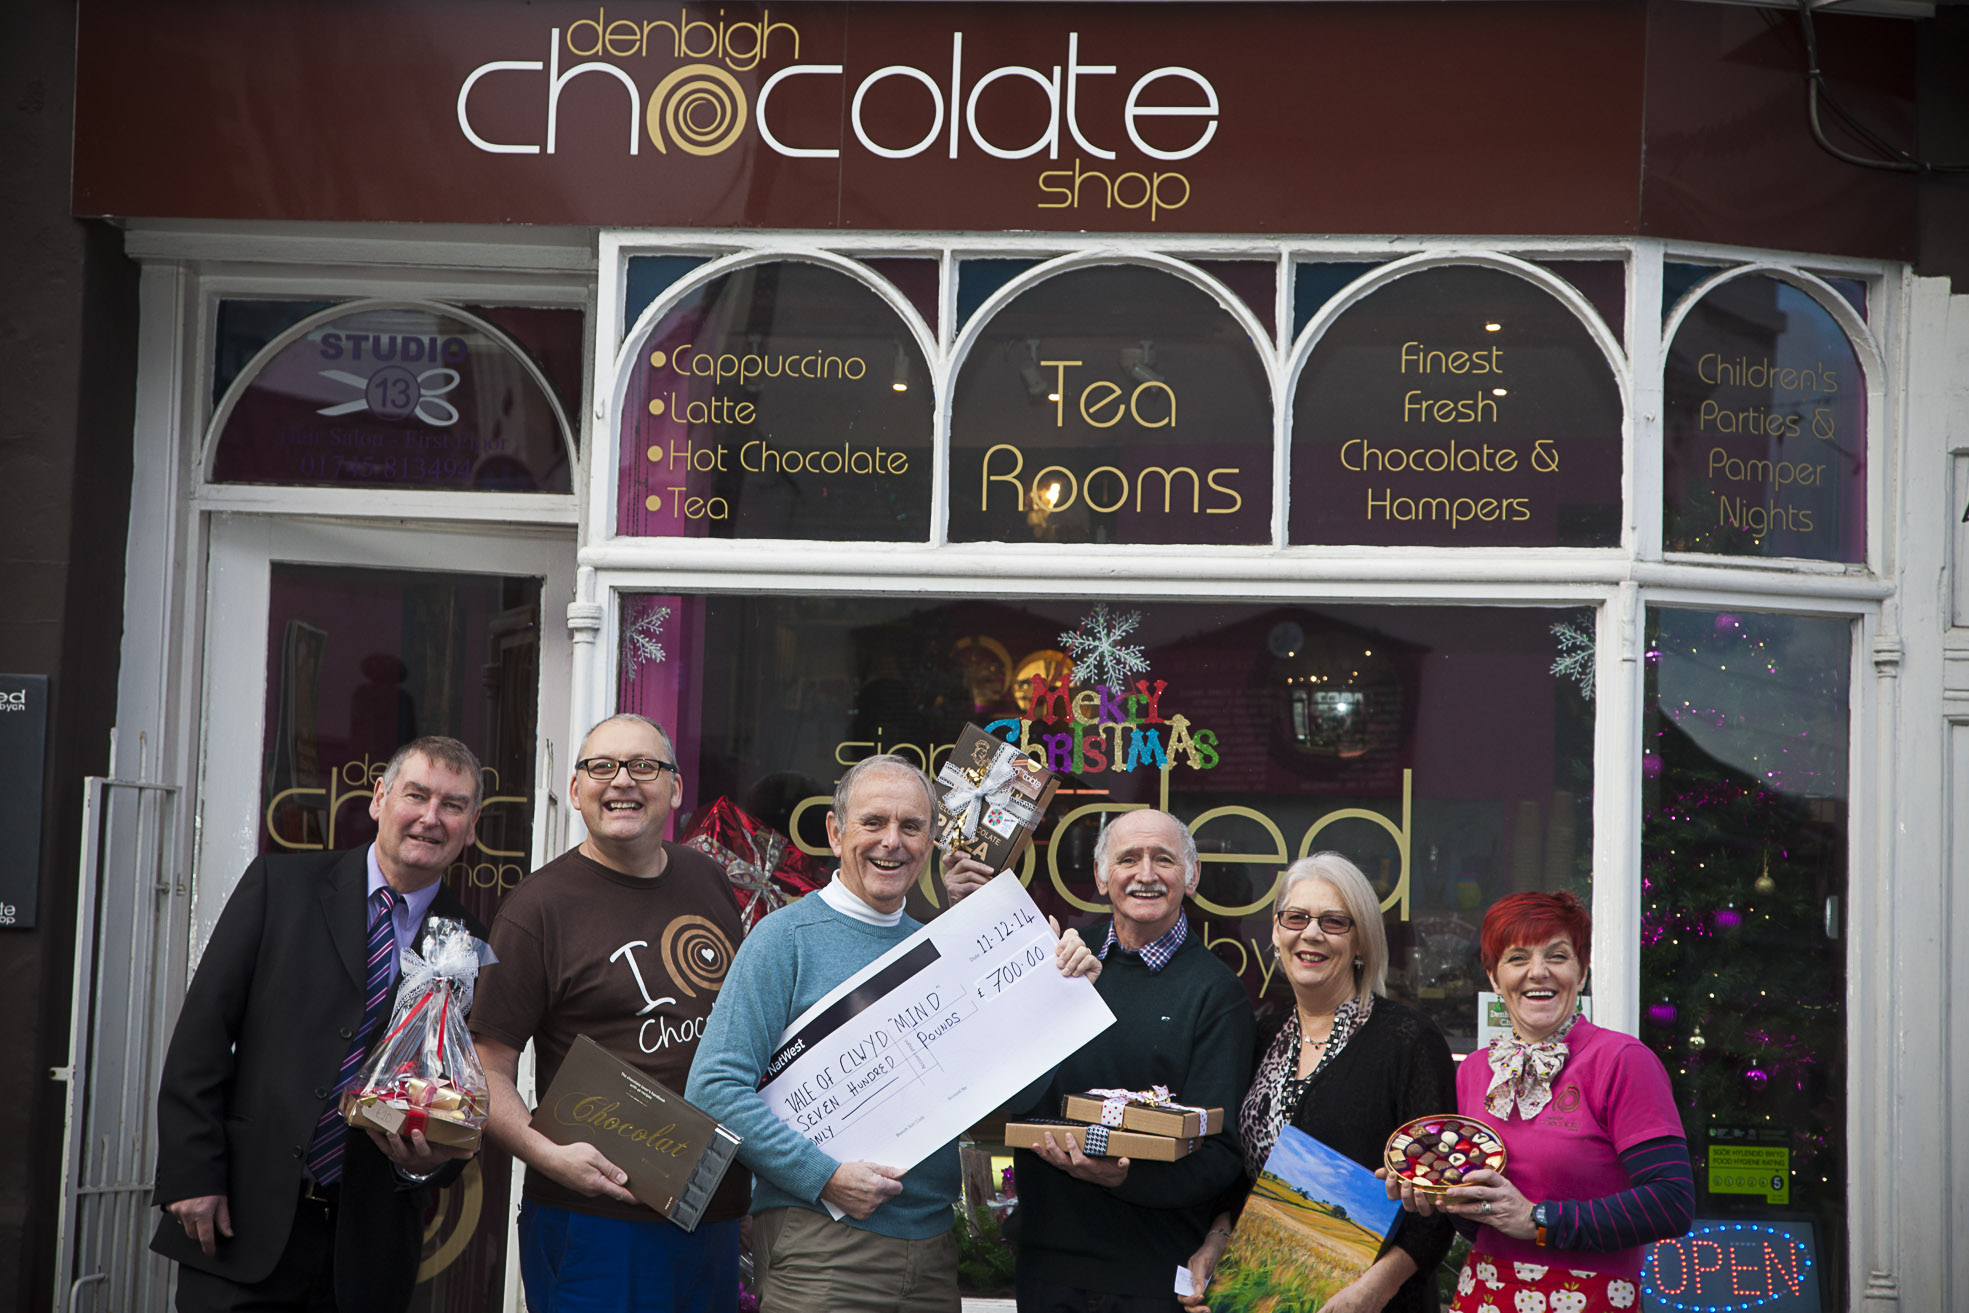 Pictured is Phil Williams, Acting Director, Mark Yound, Denbigh Chocolate shop, Barry William,Chair, Clwyd Wynn, Vice Chair, Carol Wynn Artist and Nia Lloyd-Jones from the Chocolate shop with £700 raised from a chocolate and wine tasting fundraiser.